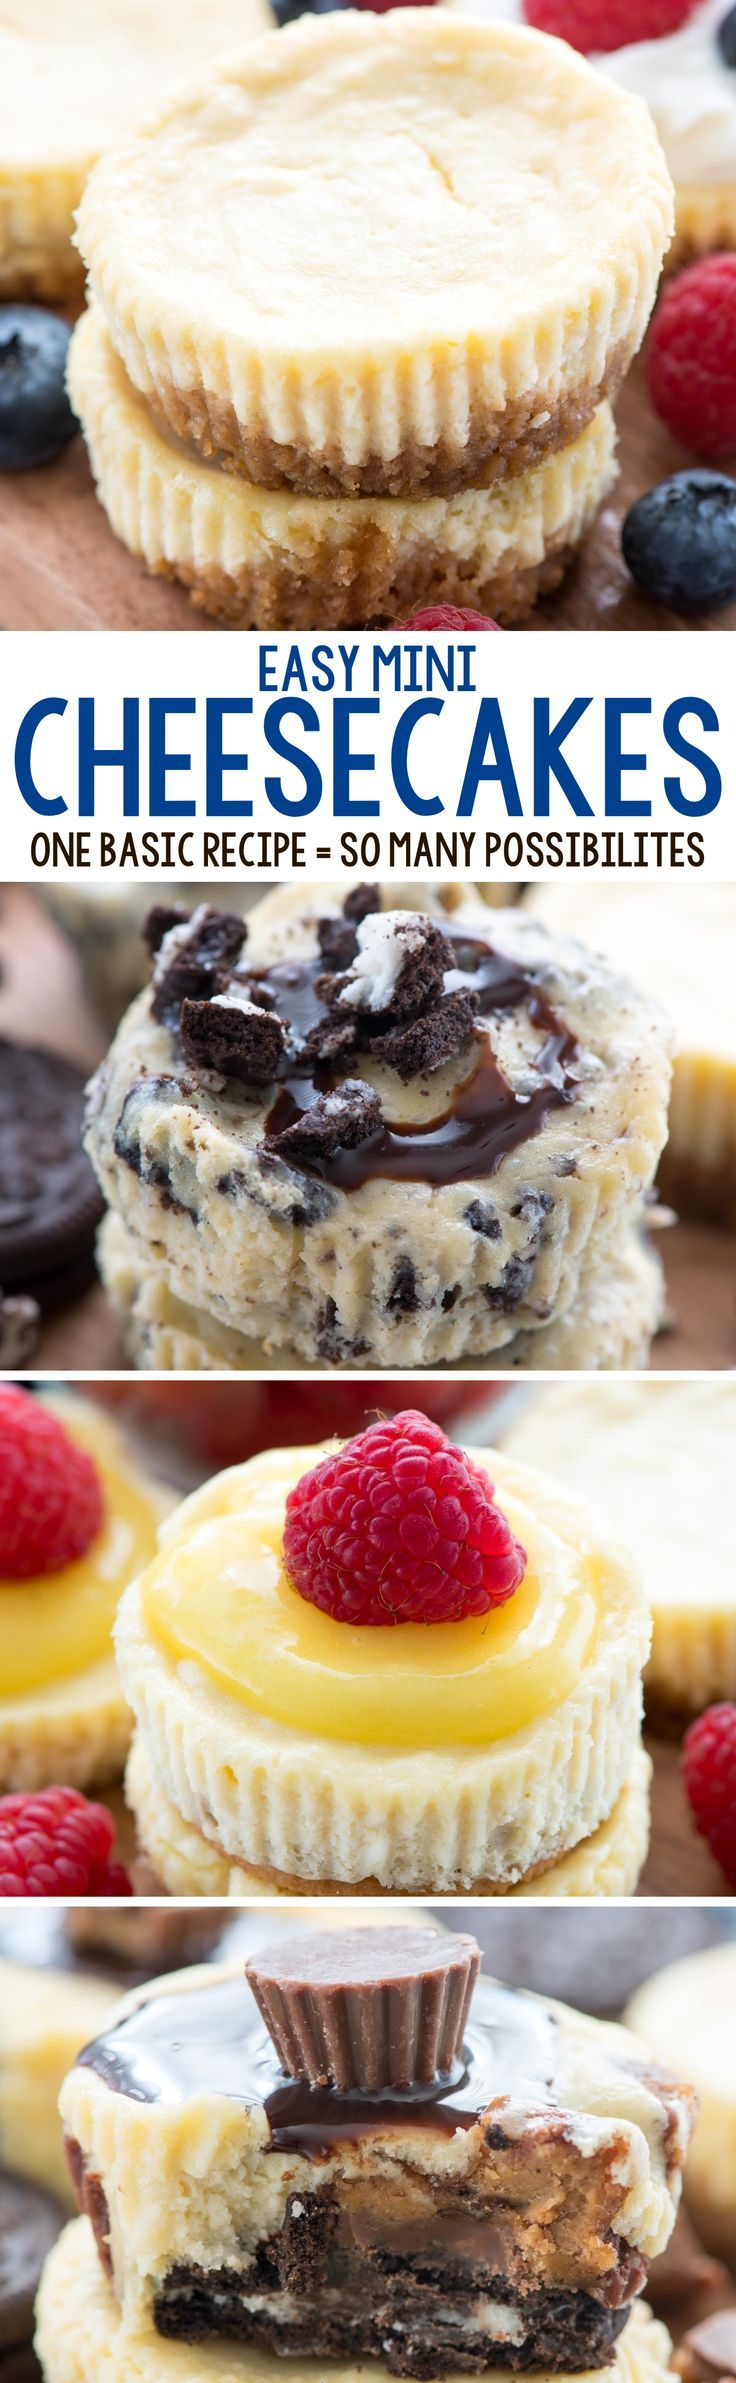 Easy Mini Cheesecake Recipe - this simple cheesecake recipe makes 12 perfect mini cheesecakes and can be made so many ways! Lemon, Oreo, S'mores, Fruit, Peanut Butter Cup - any cheesecake you want in no time at all.